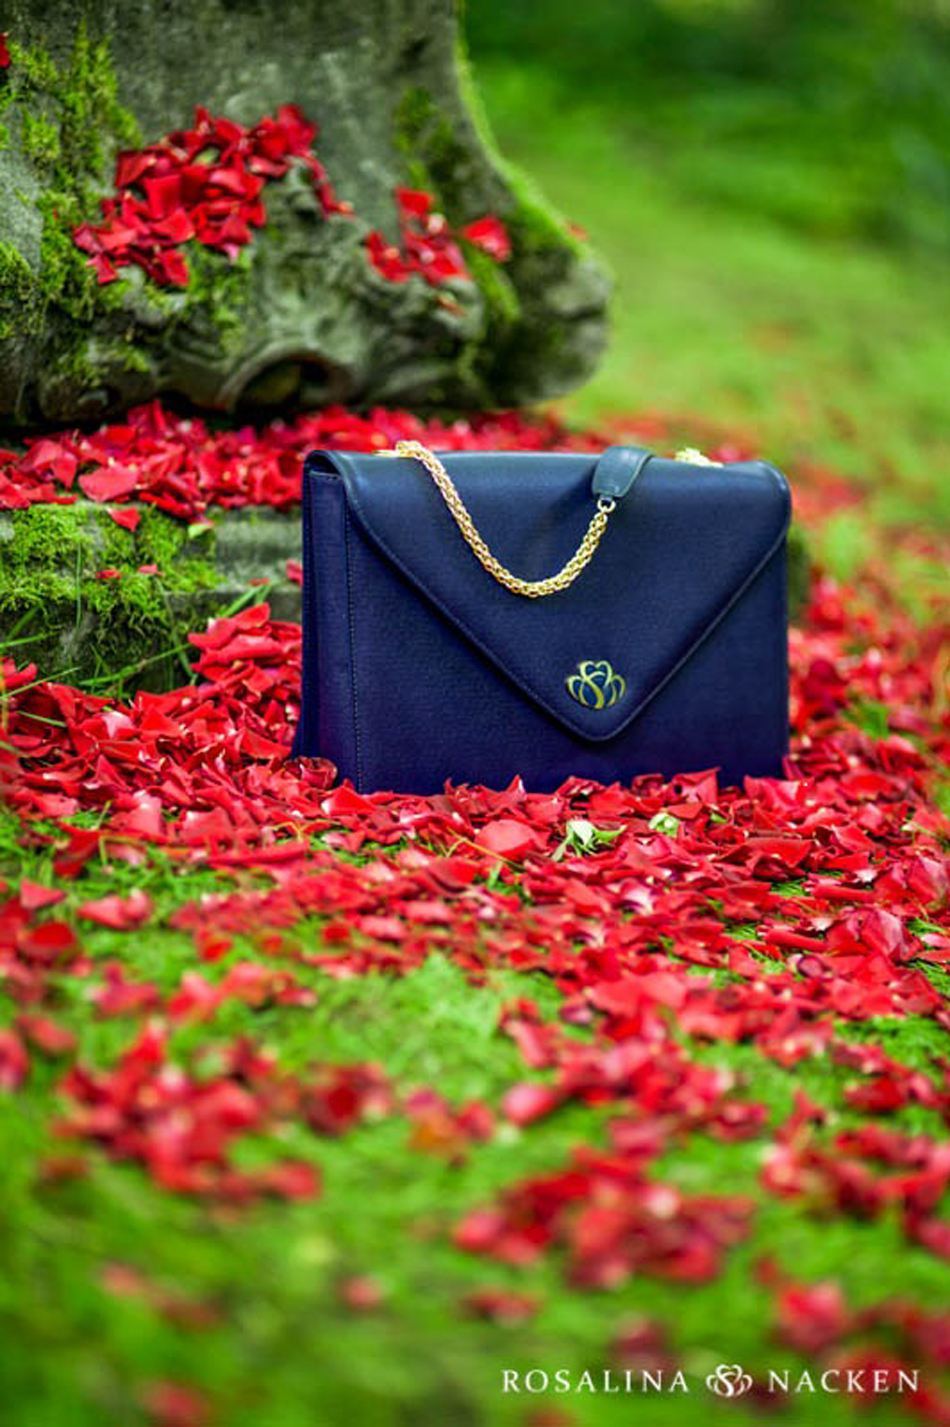 The Shelle Classica; paving the way for women to strive in their careers while exuding elegance and stylish taste.